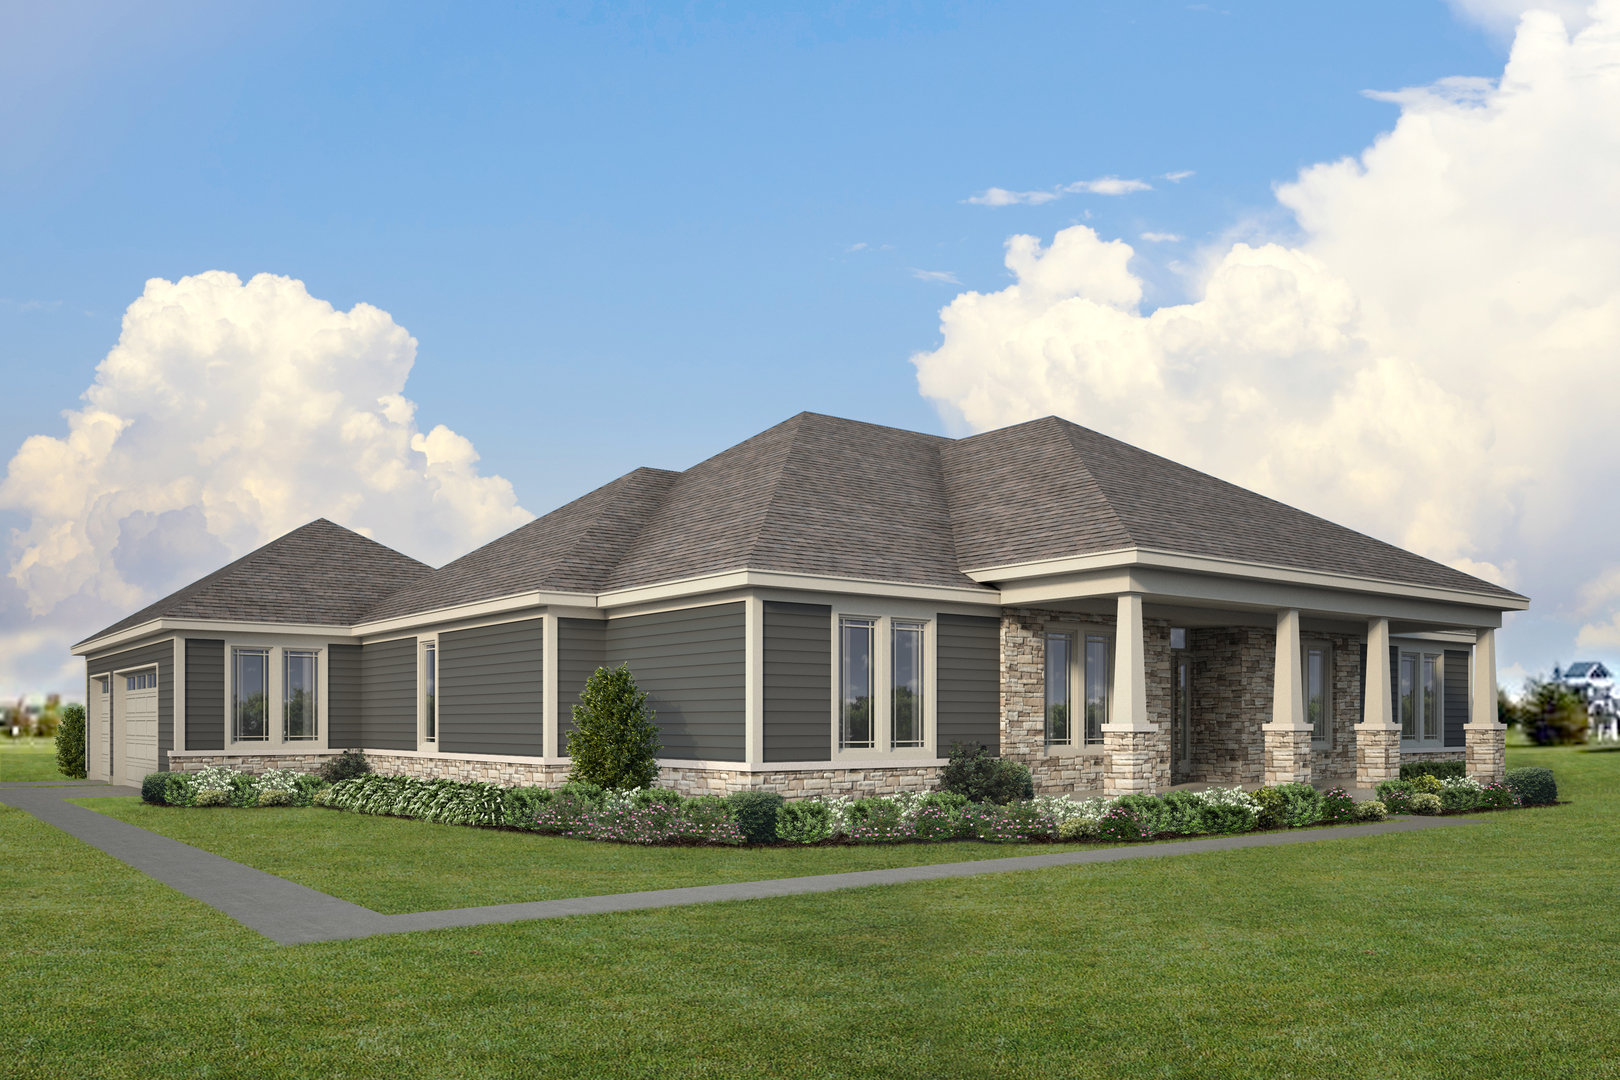 Photo for Lot 115 Merry Oaks Drive, Sycamore, IL 60178 (MLS # 10633664)